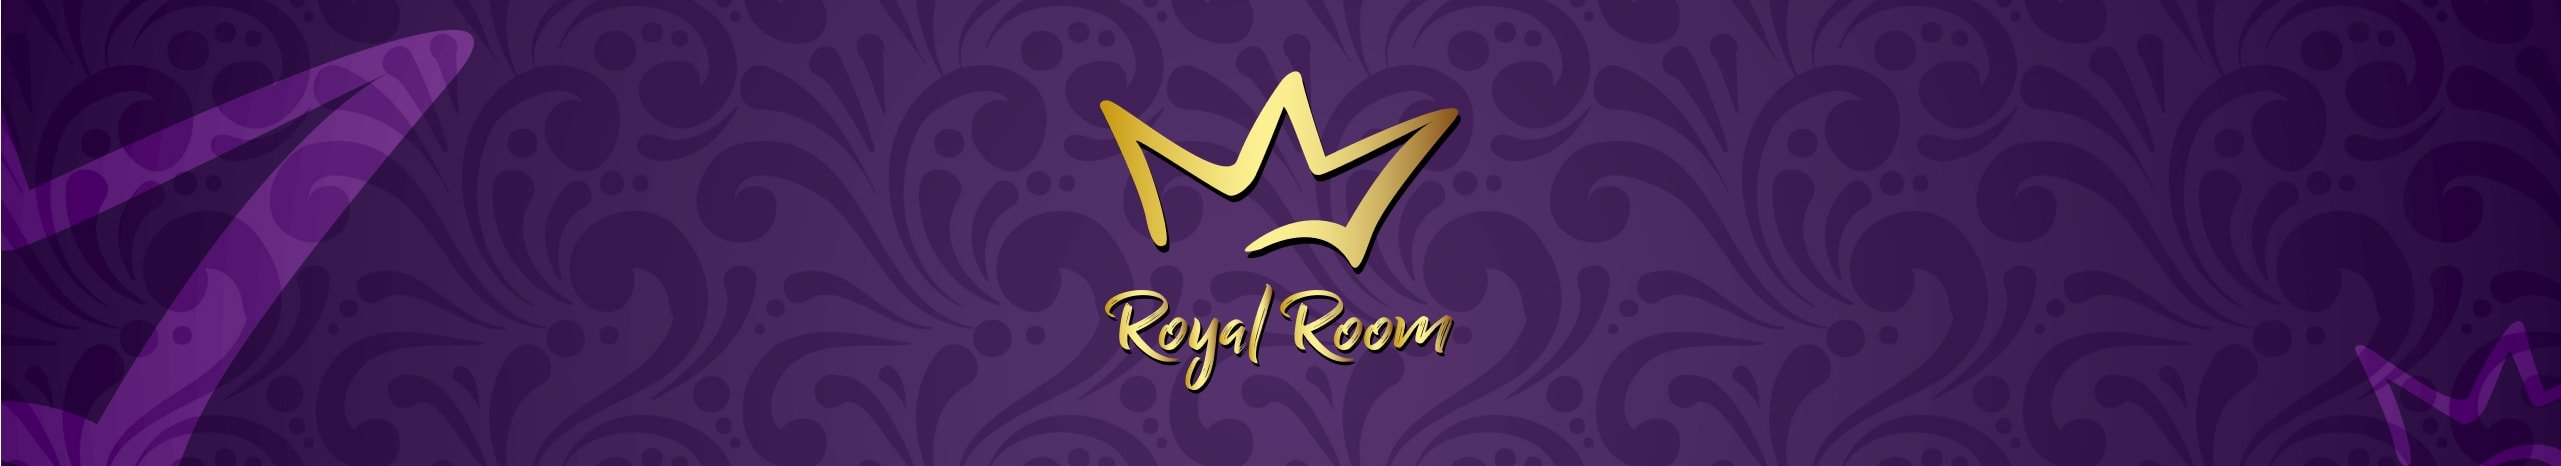 Ever wondered what it would be like to be a VIP? Look no farther because in our Royal Room, we treat you like our very own King and Queen.